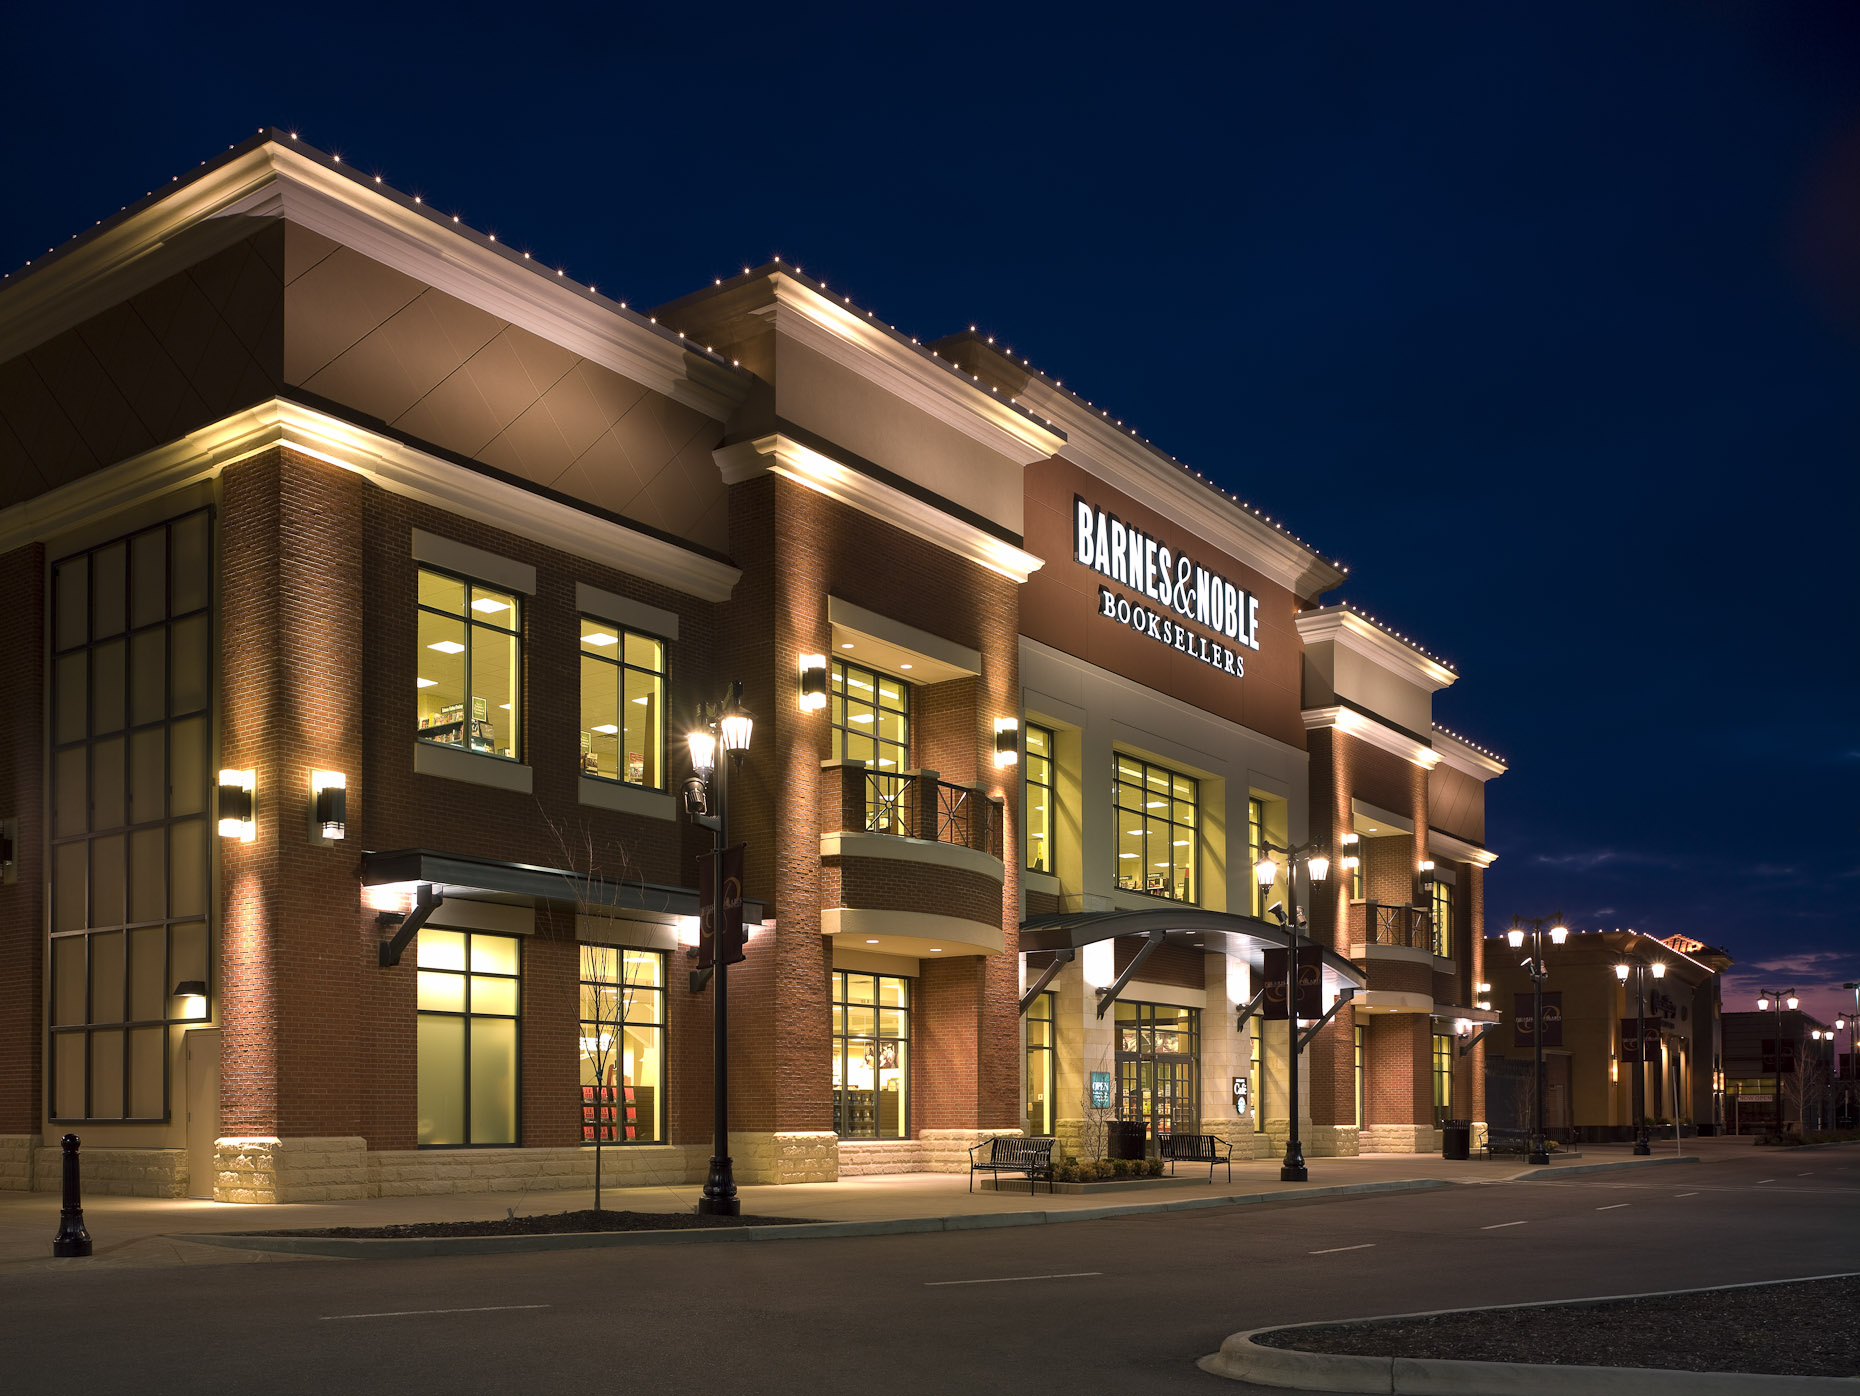 Polaris Fashion Place Barnes & Noble photographed by Brad Feinknopf based in Columbus, Ohio